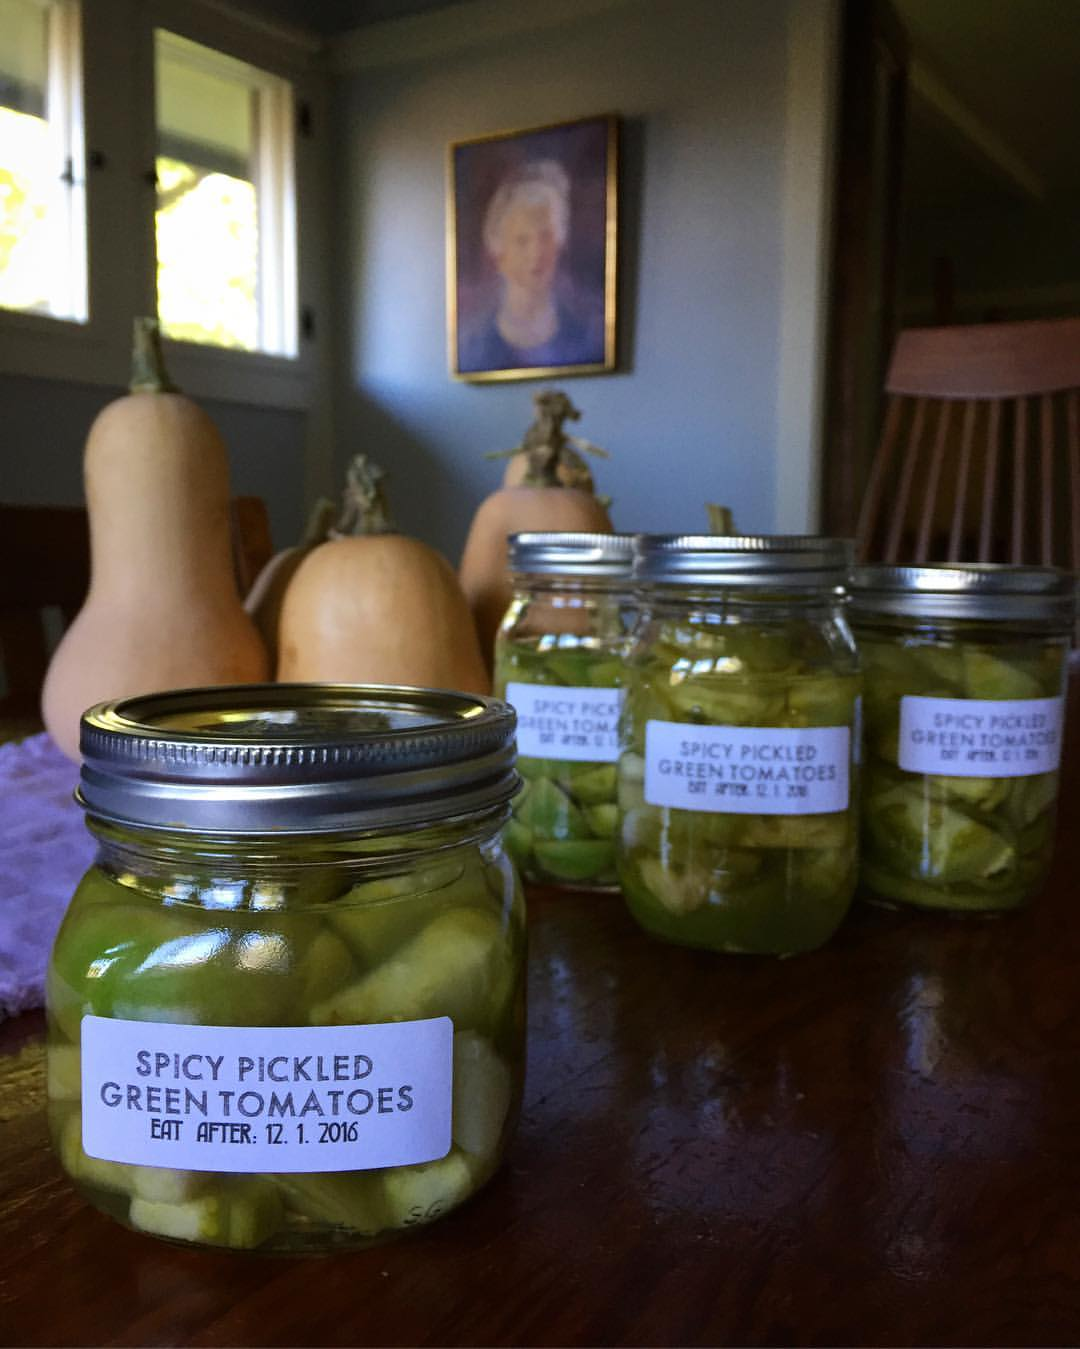 Spicy Pickled Green Tomatoes